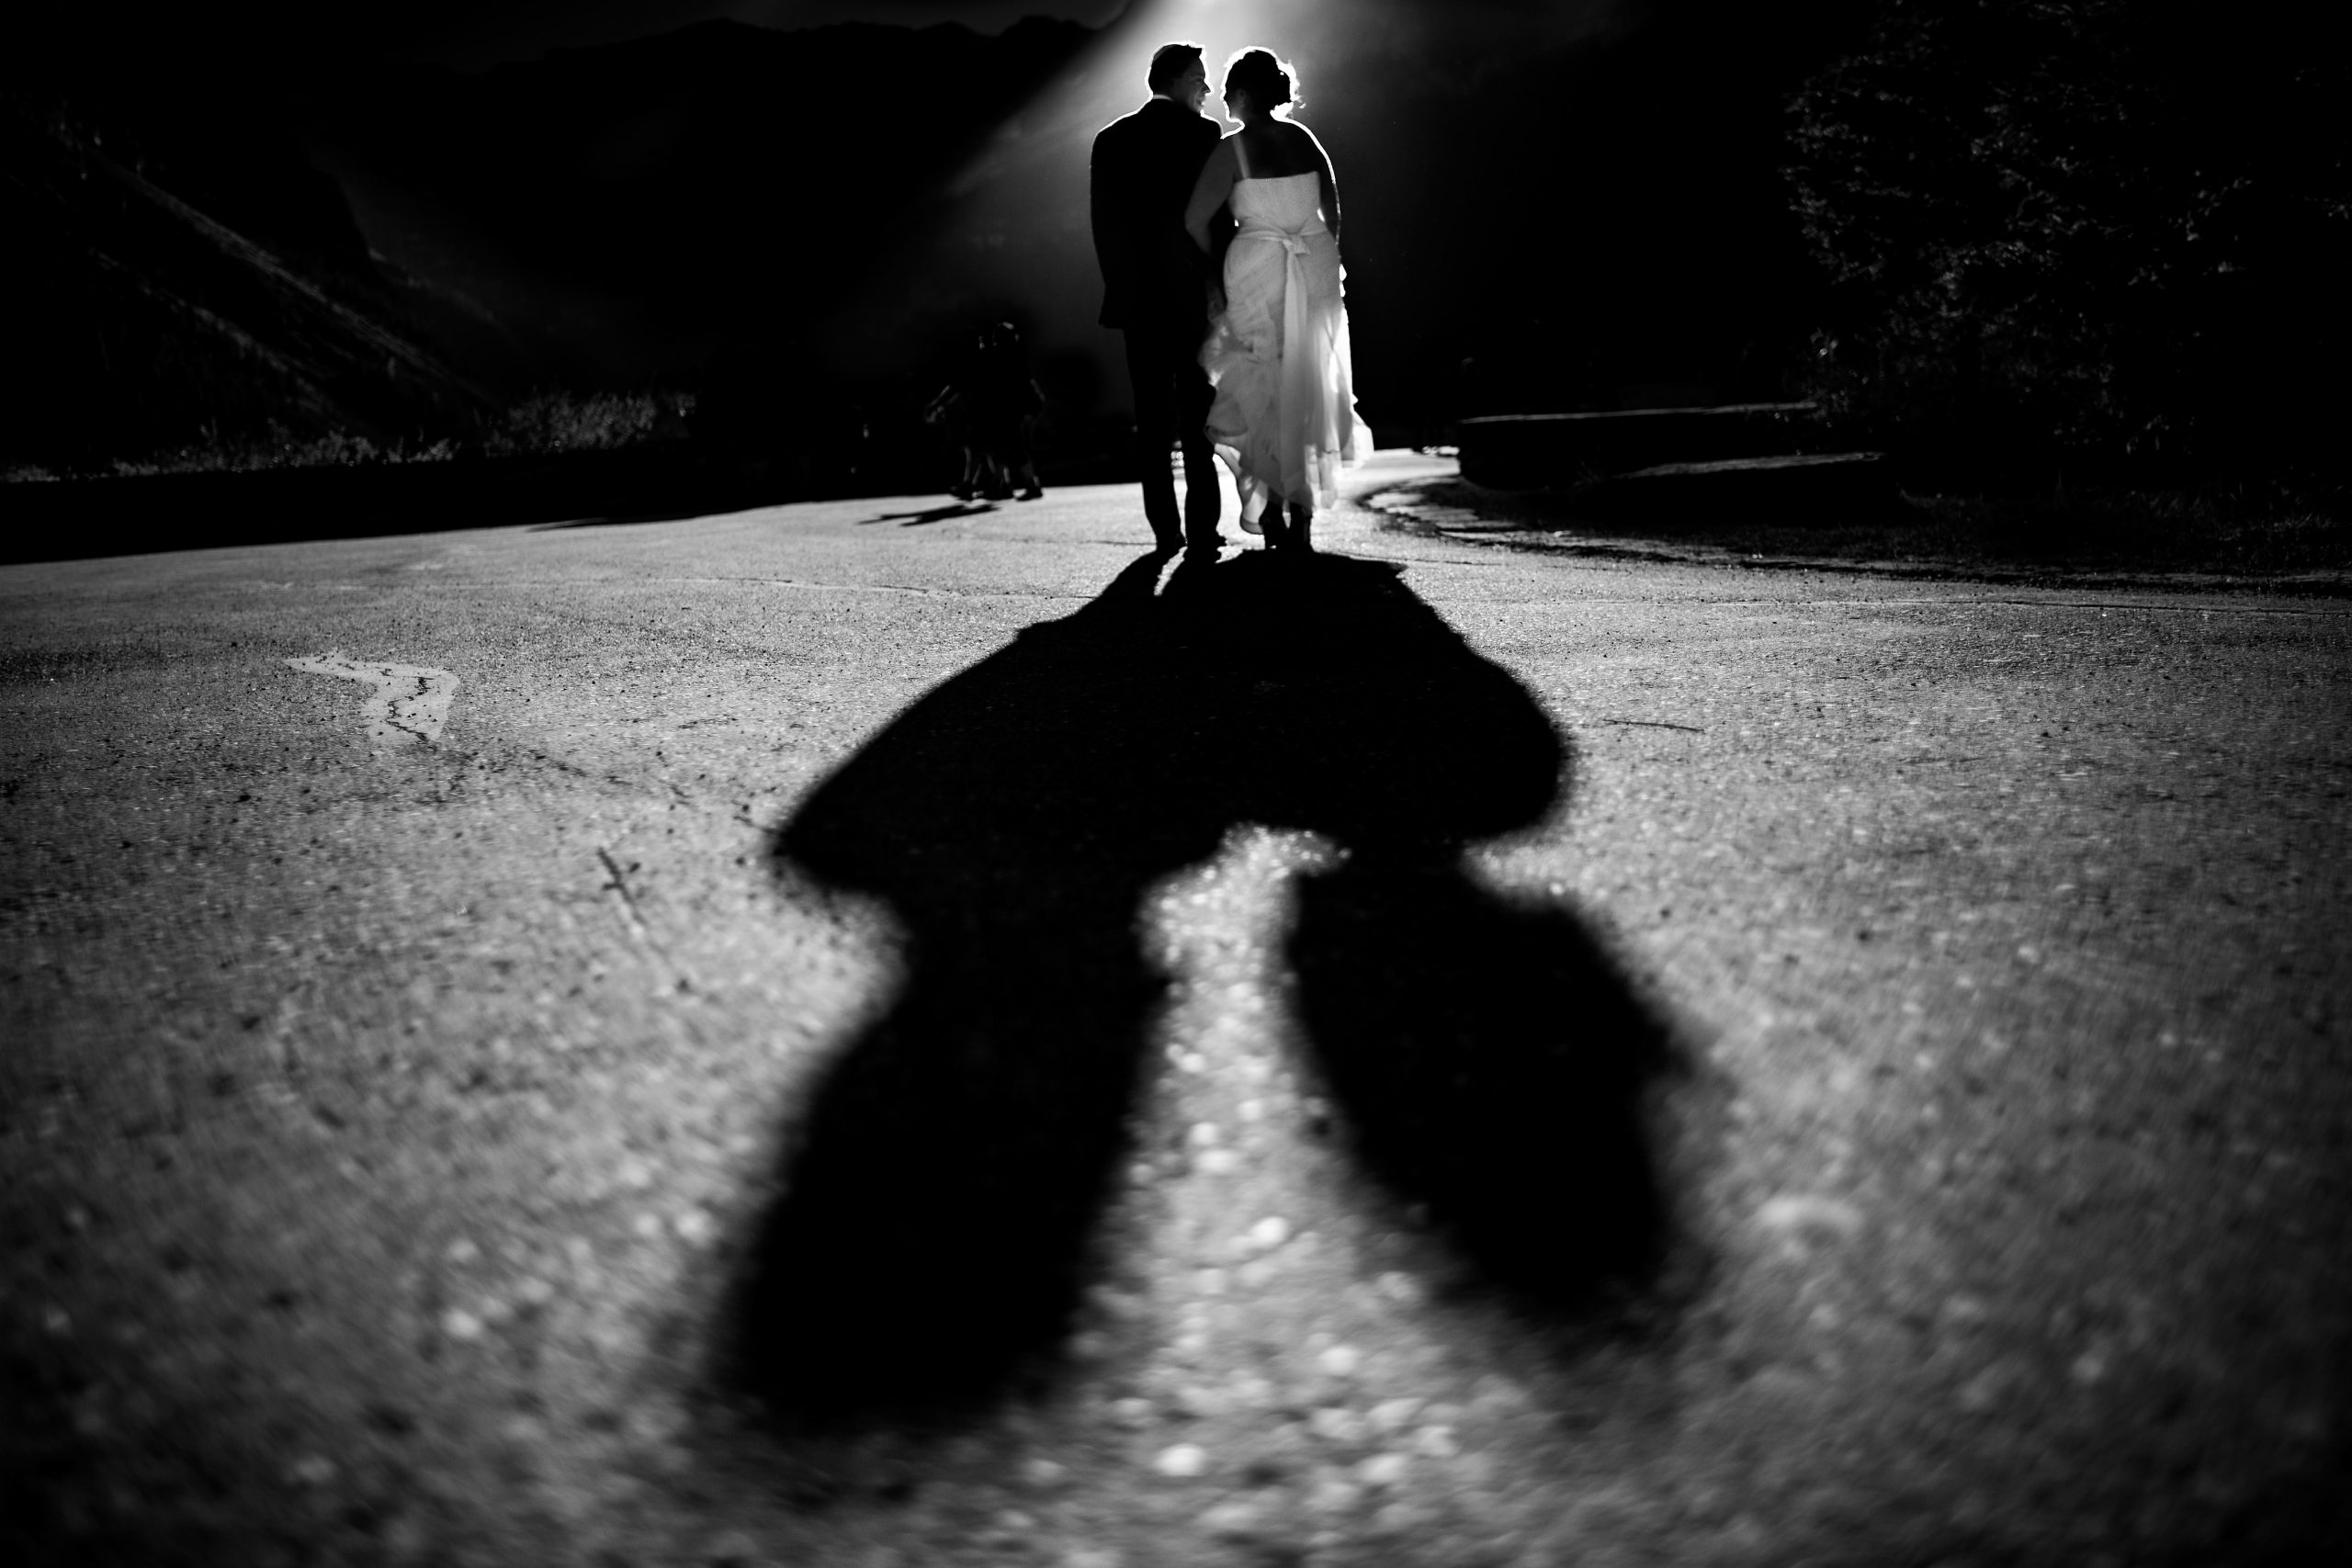 Bride and groom walk together as their shadow is cast behind them